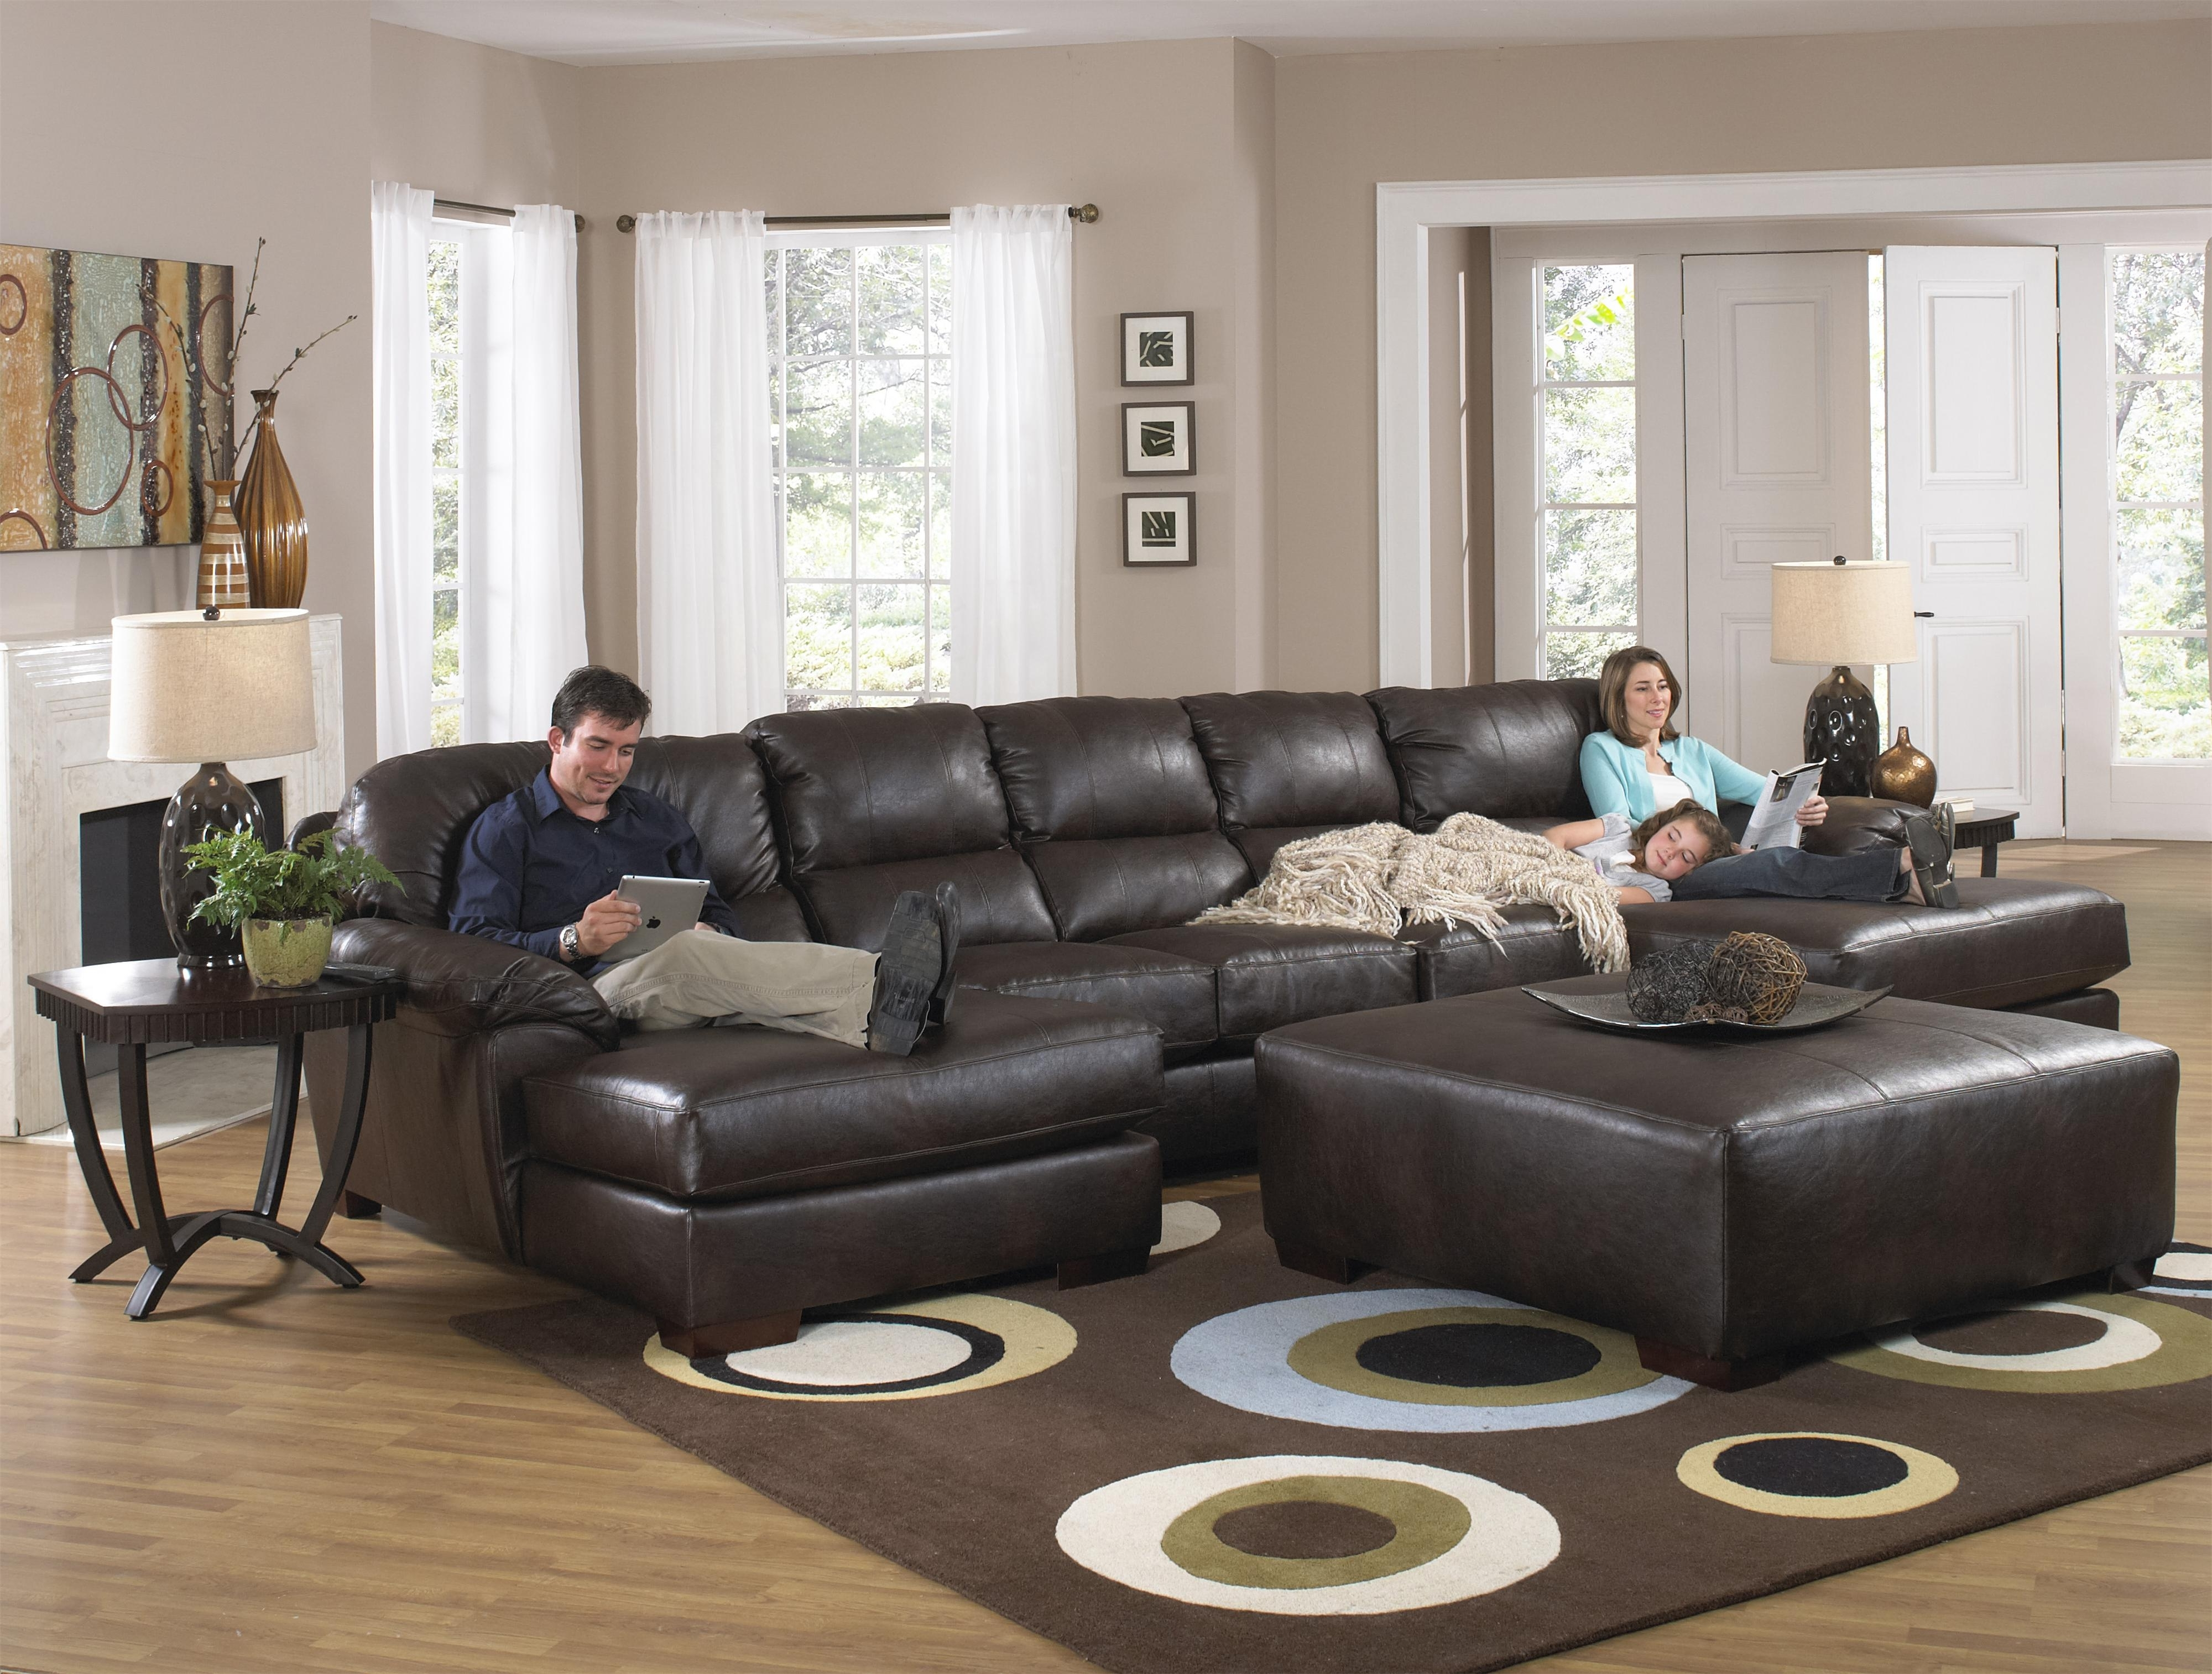 2019 Leather Sectional Sofas With Ottoman With Regard To Furniture : Two Chaise Sectional Sofa With Five Total Seats (View 2 of 20)